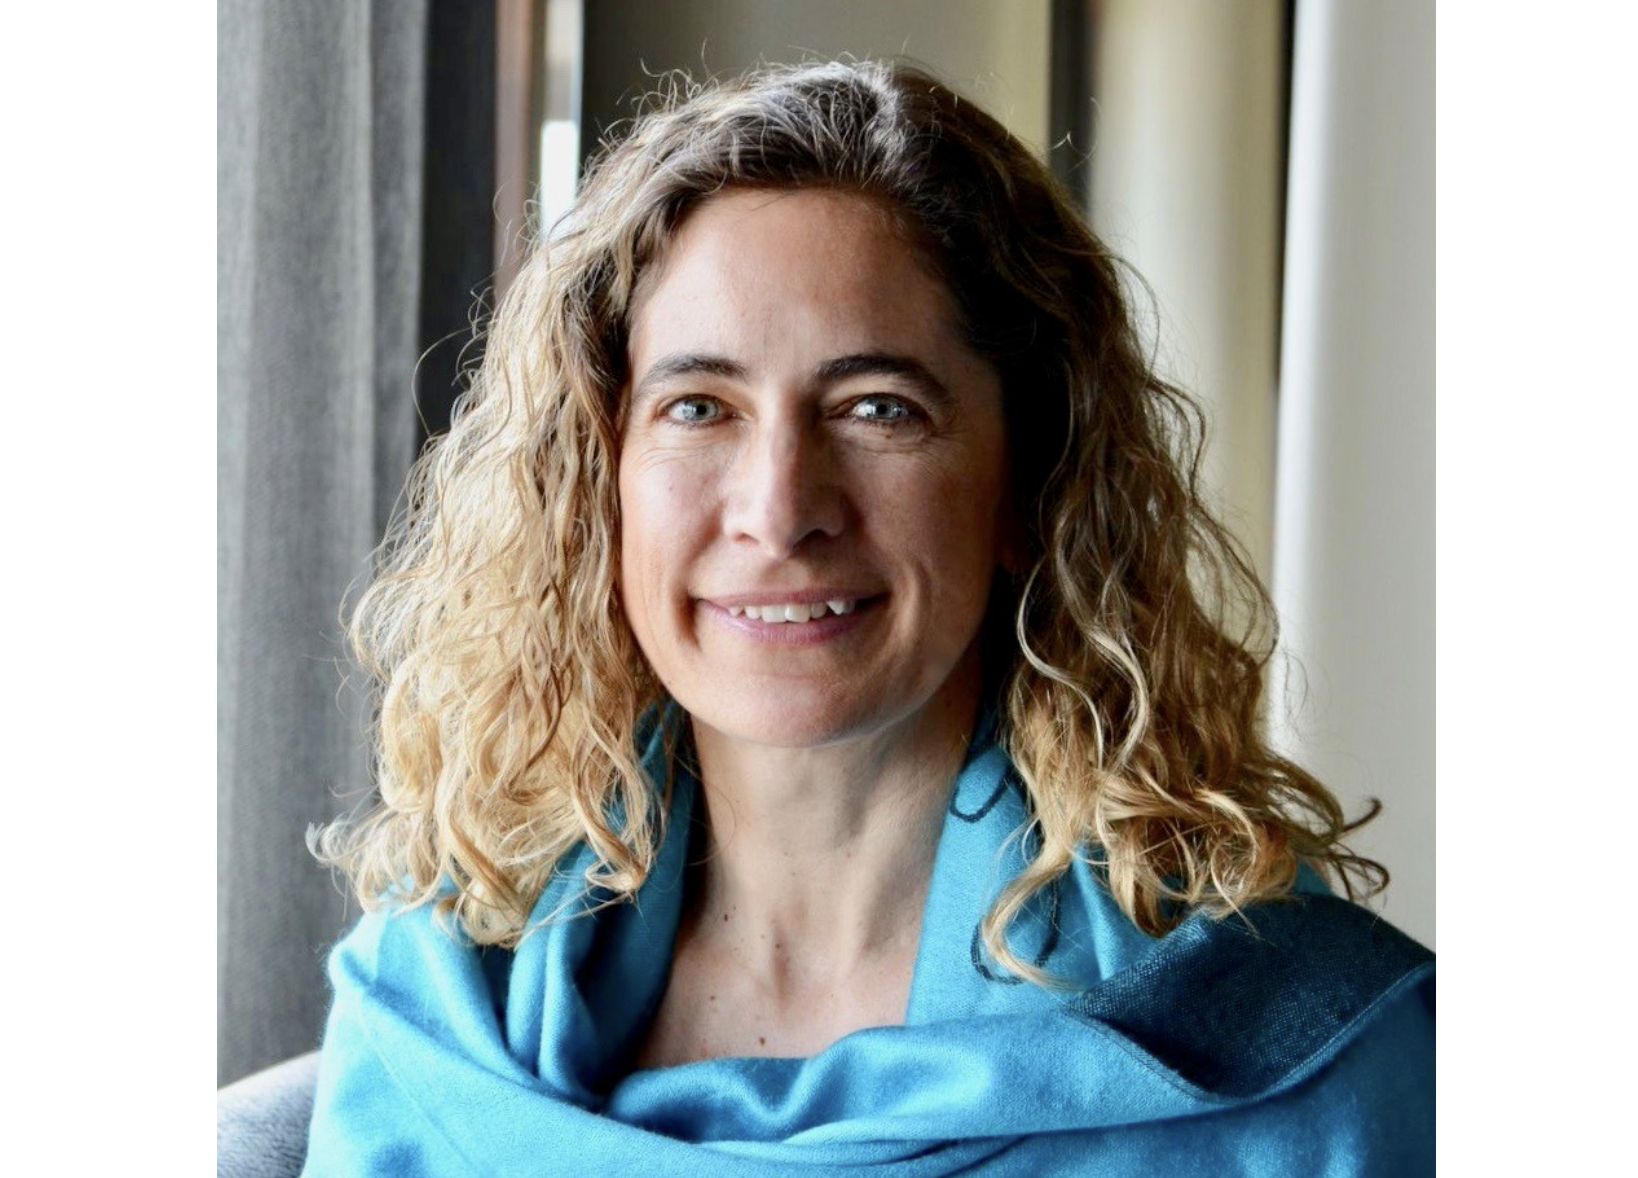 Headshot of woman with shoulder-length hair in a blue sweater, with a curtained background.